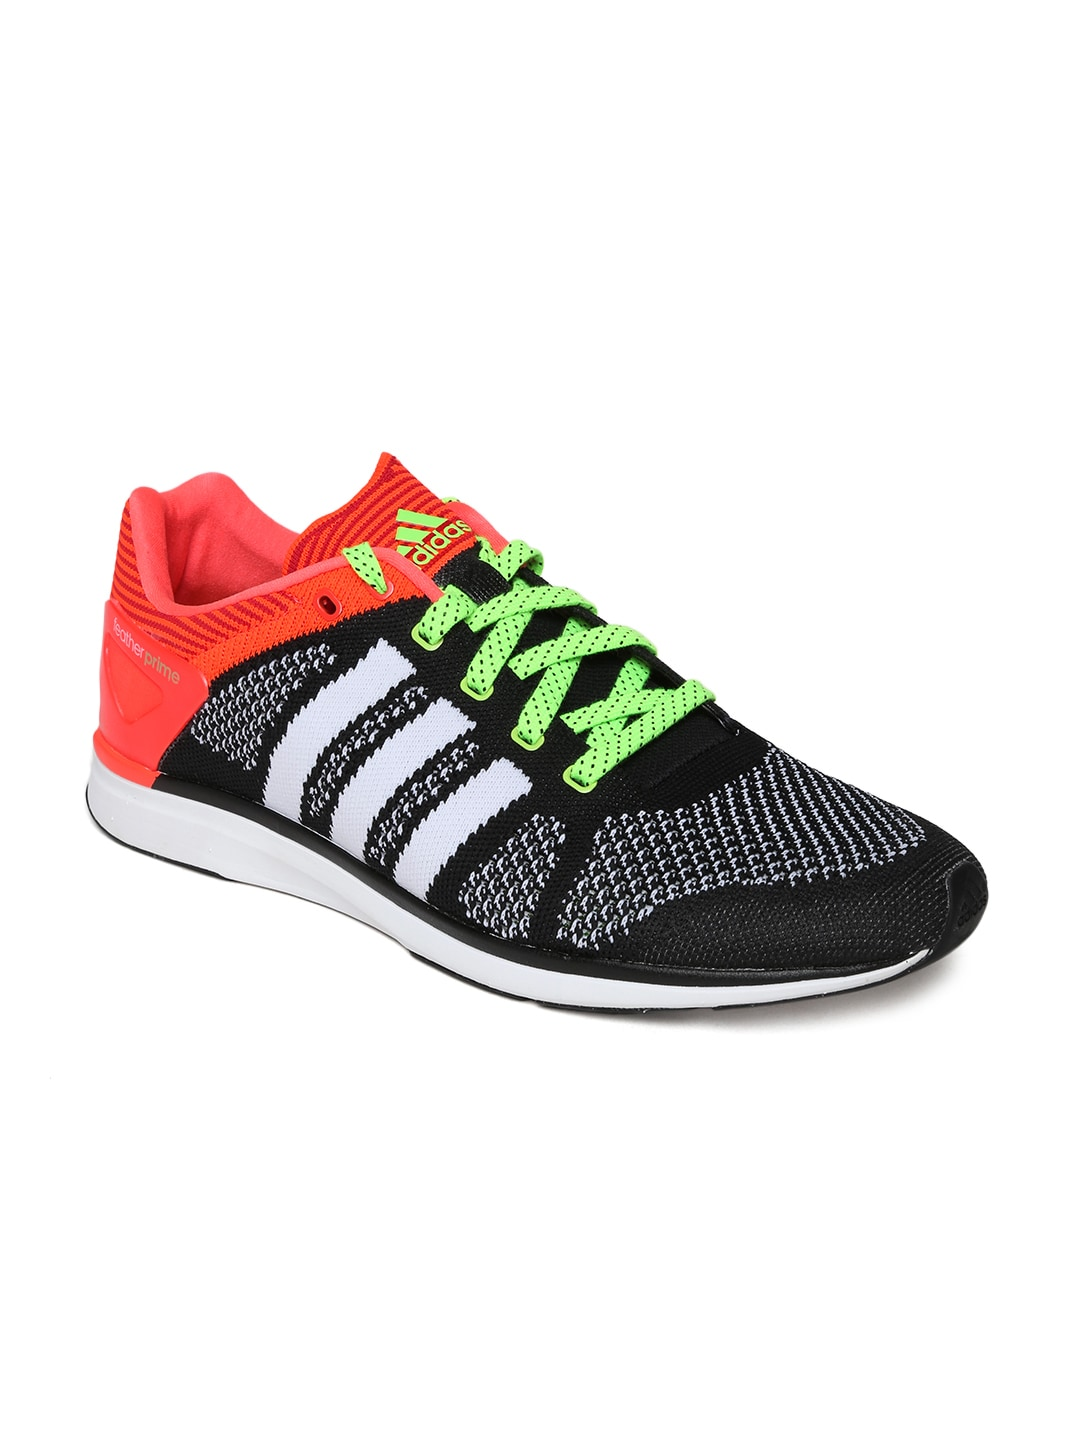 reputable site 0fd34 ebe37 Adidas m21201 Men Black White Adizero Feather Prime M Running Shoes- Price  in India